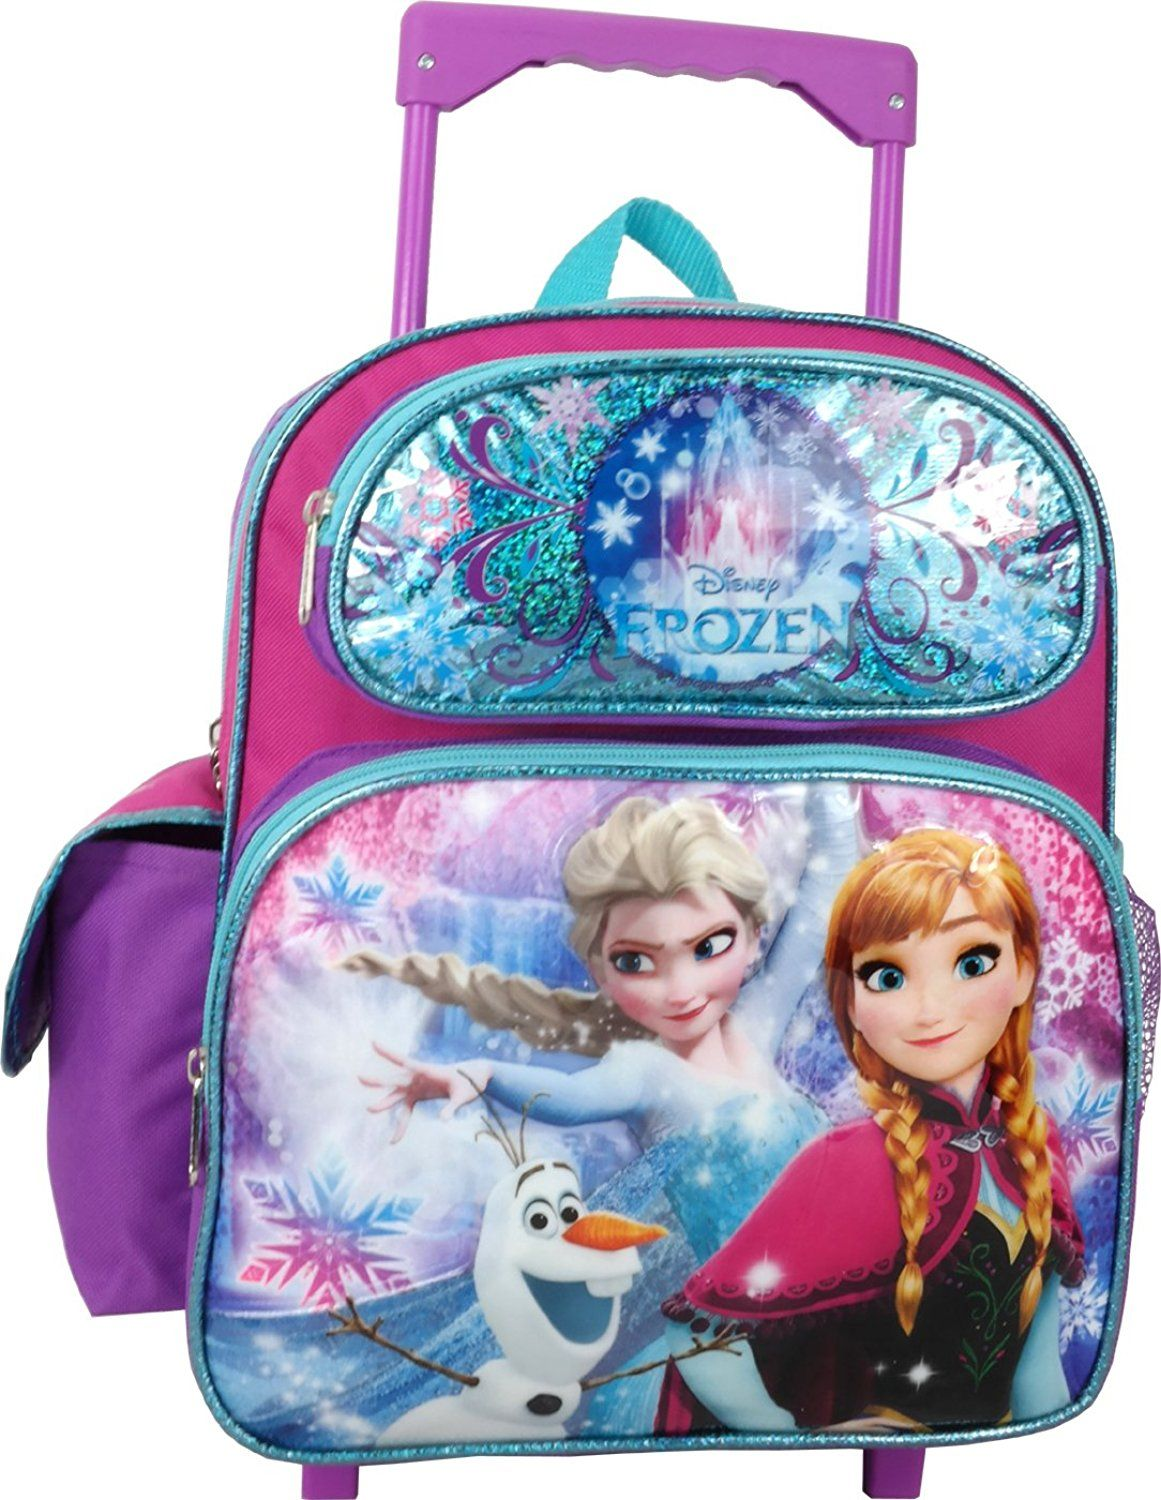 2b7e157dae7a Disney Frozen 12' Toddler Mini Rolling Backpack * Details can be ...